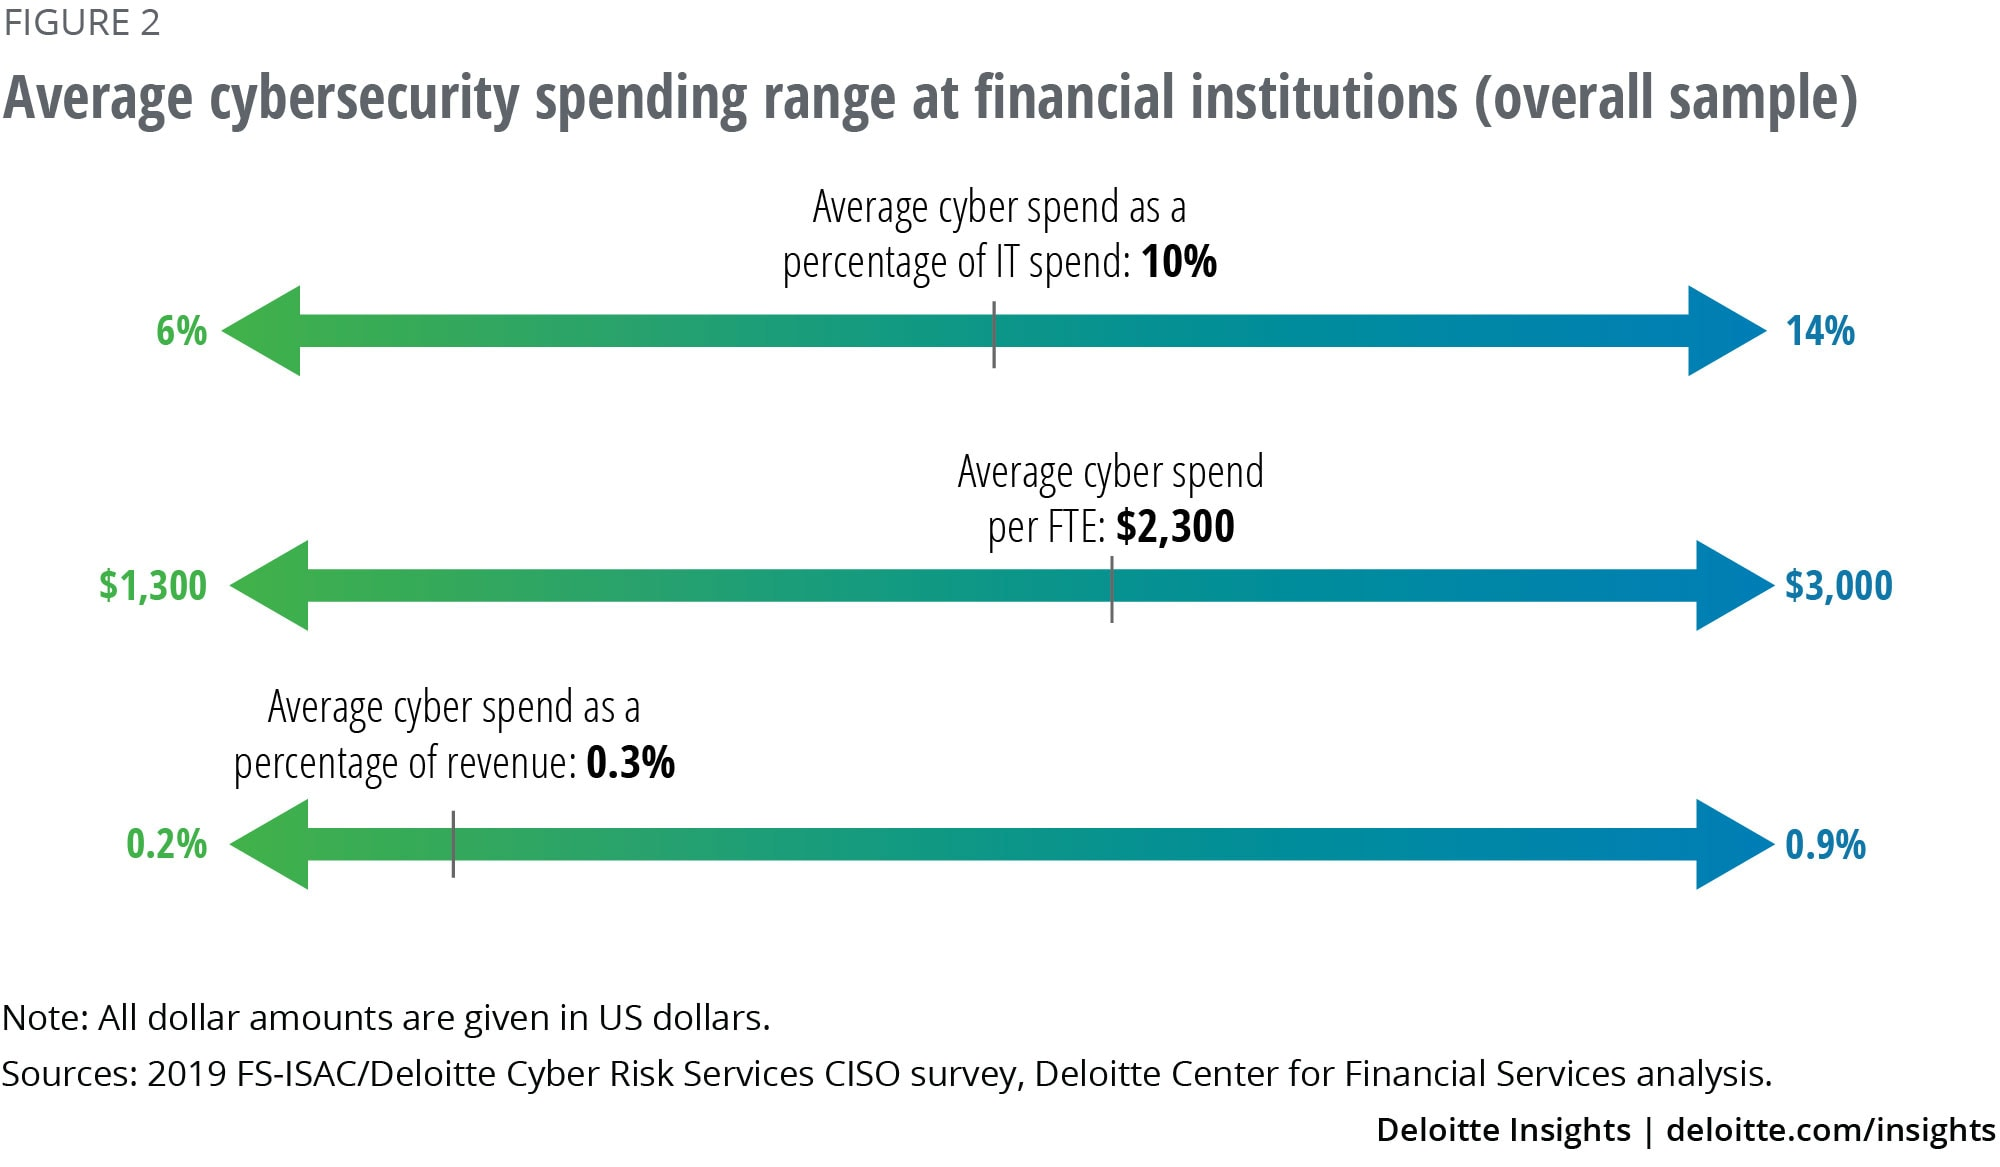 Average cybersecurity spending range at financial institutions (overall sample)